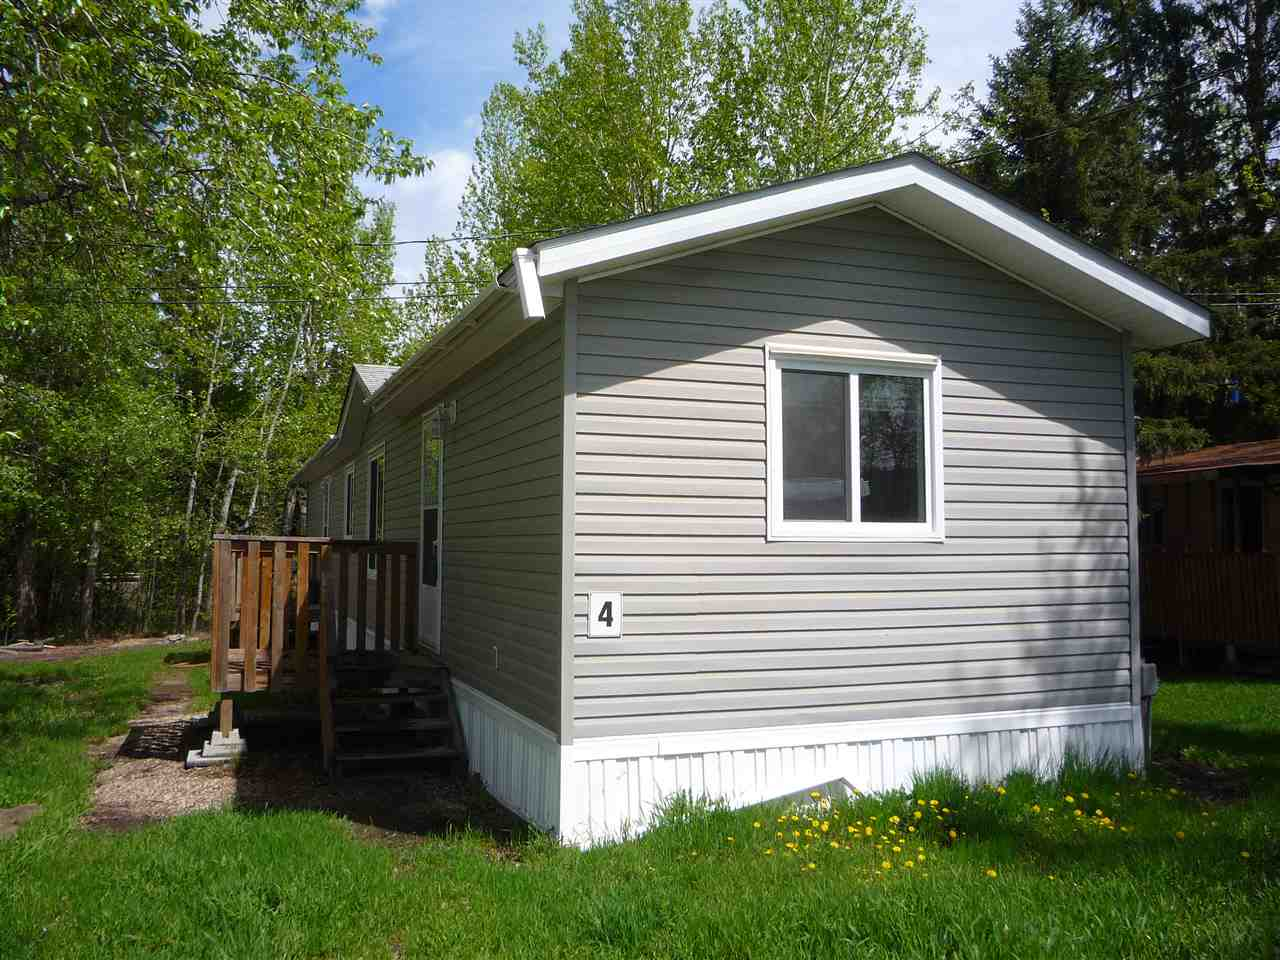 4 Greenwood MHP, Drayton Valley, AB T7A 1M5